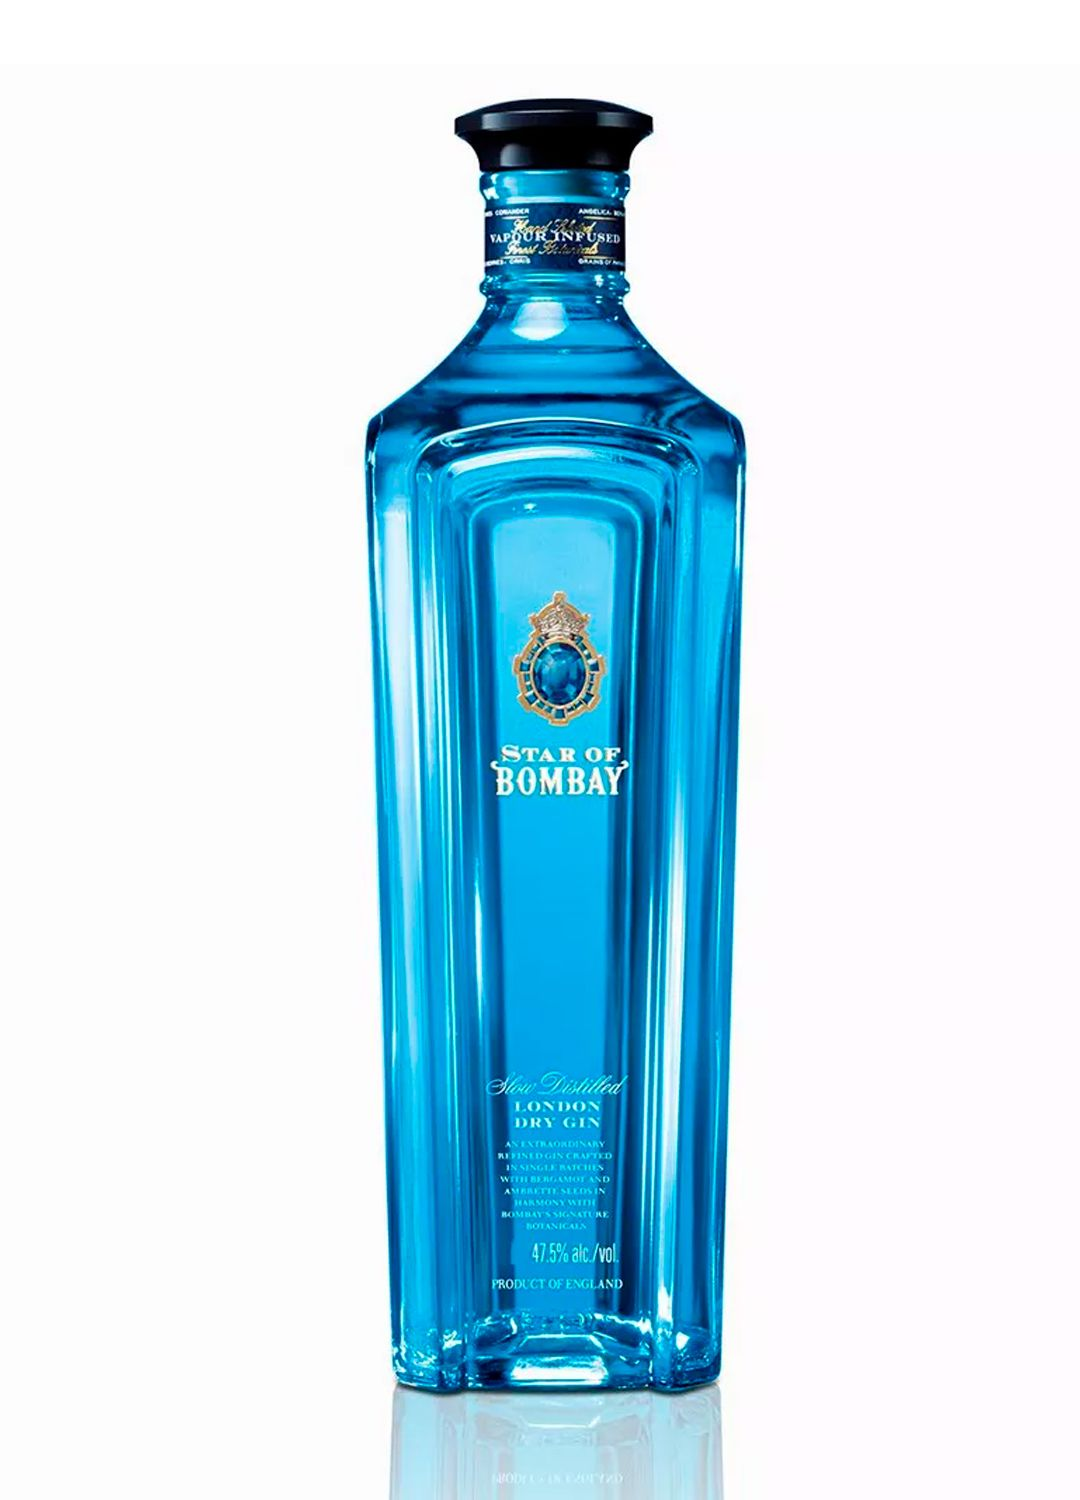 GIN STAR OF BOMBAY - CLUBE - 750 ML